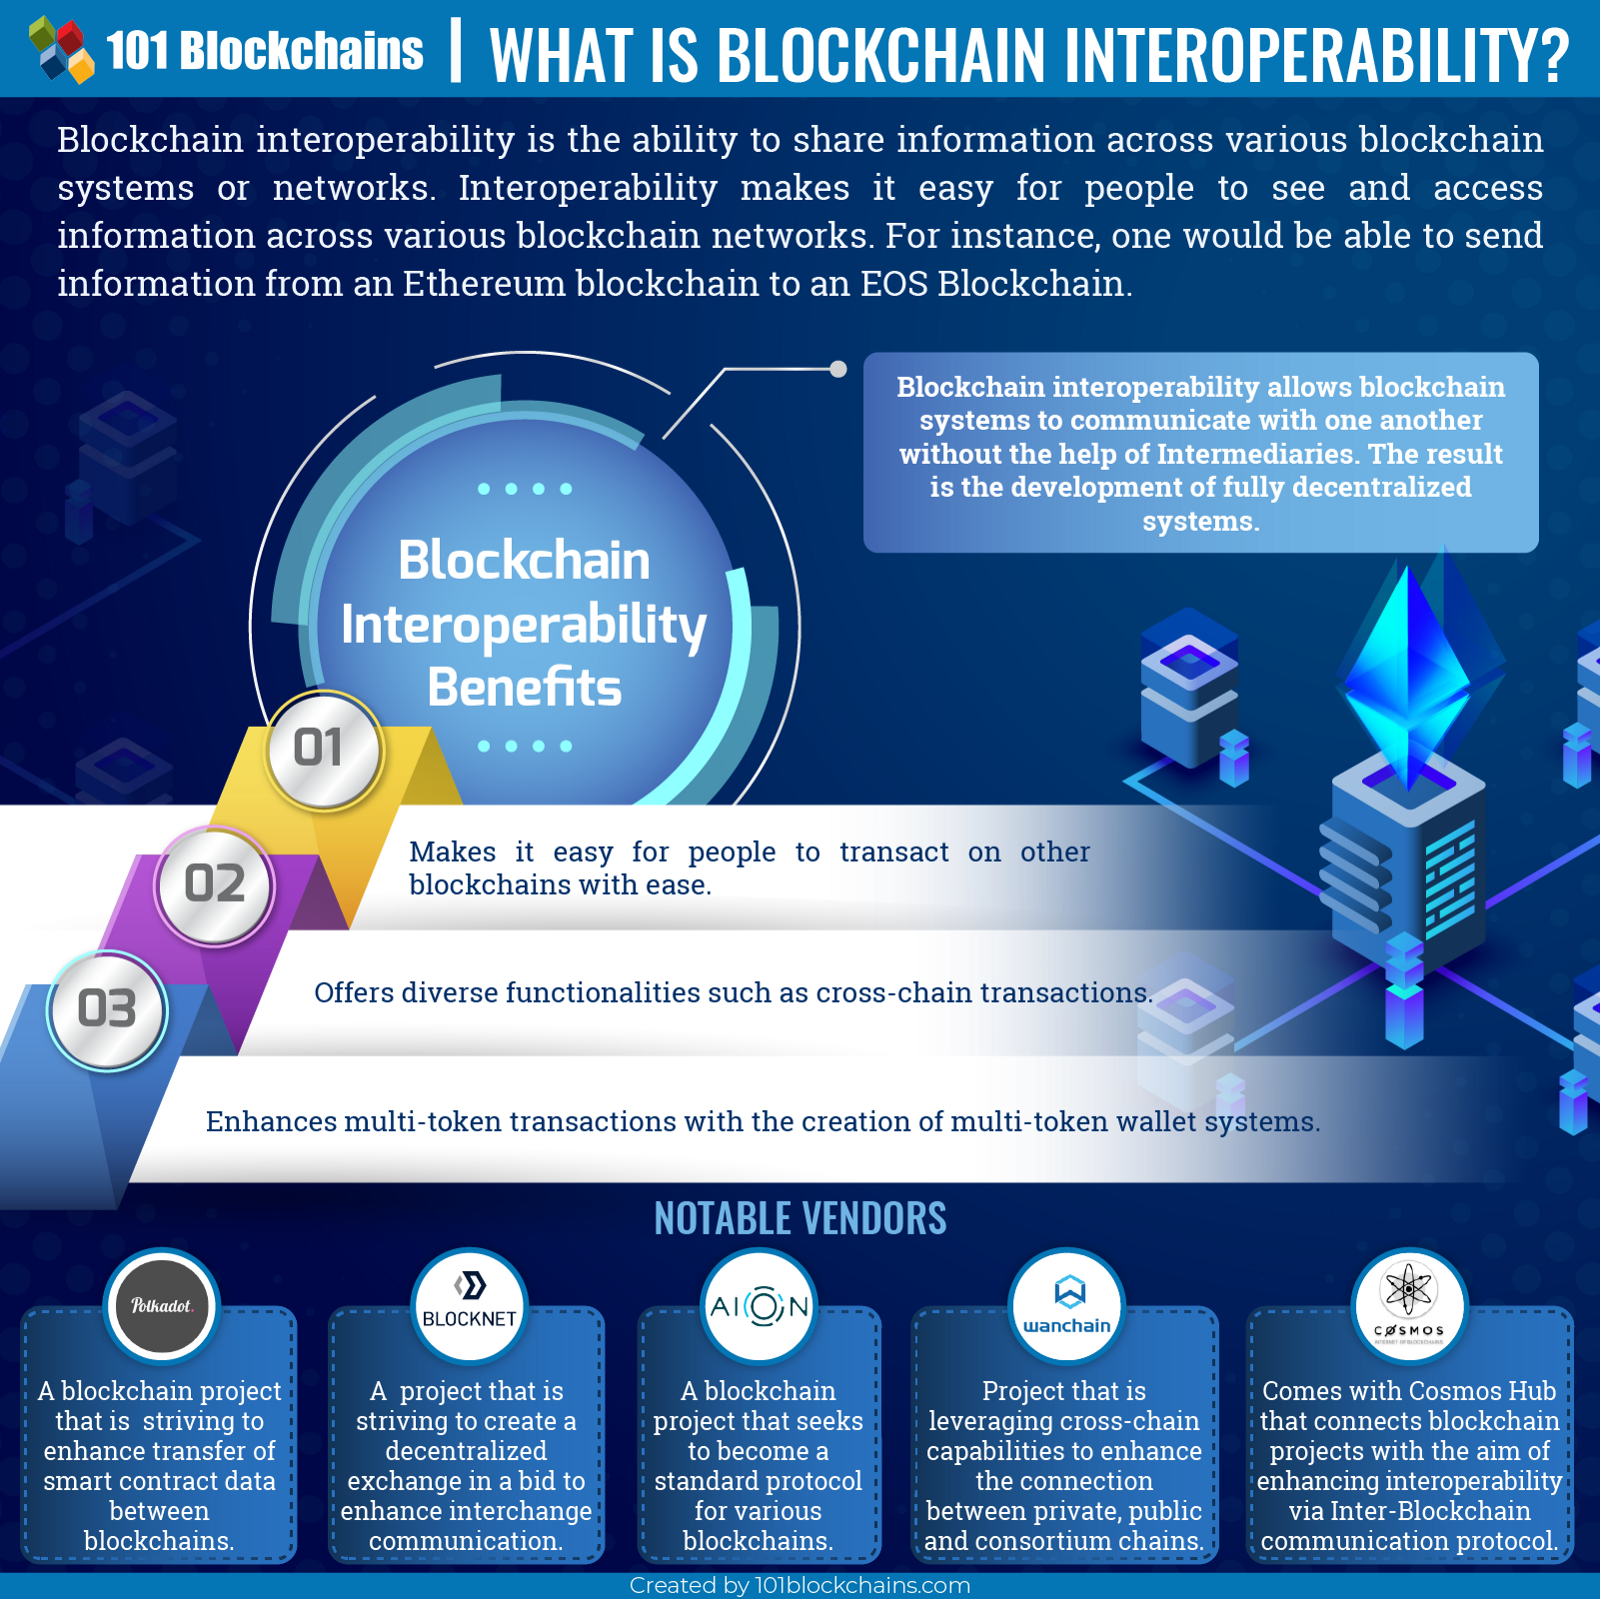 Top 7 Blockchain Technology Trends to Watch in 2019